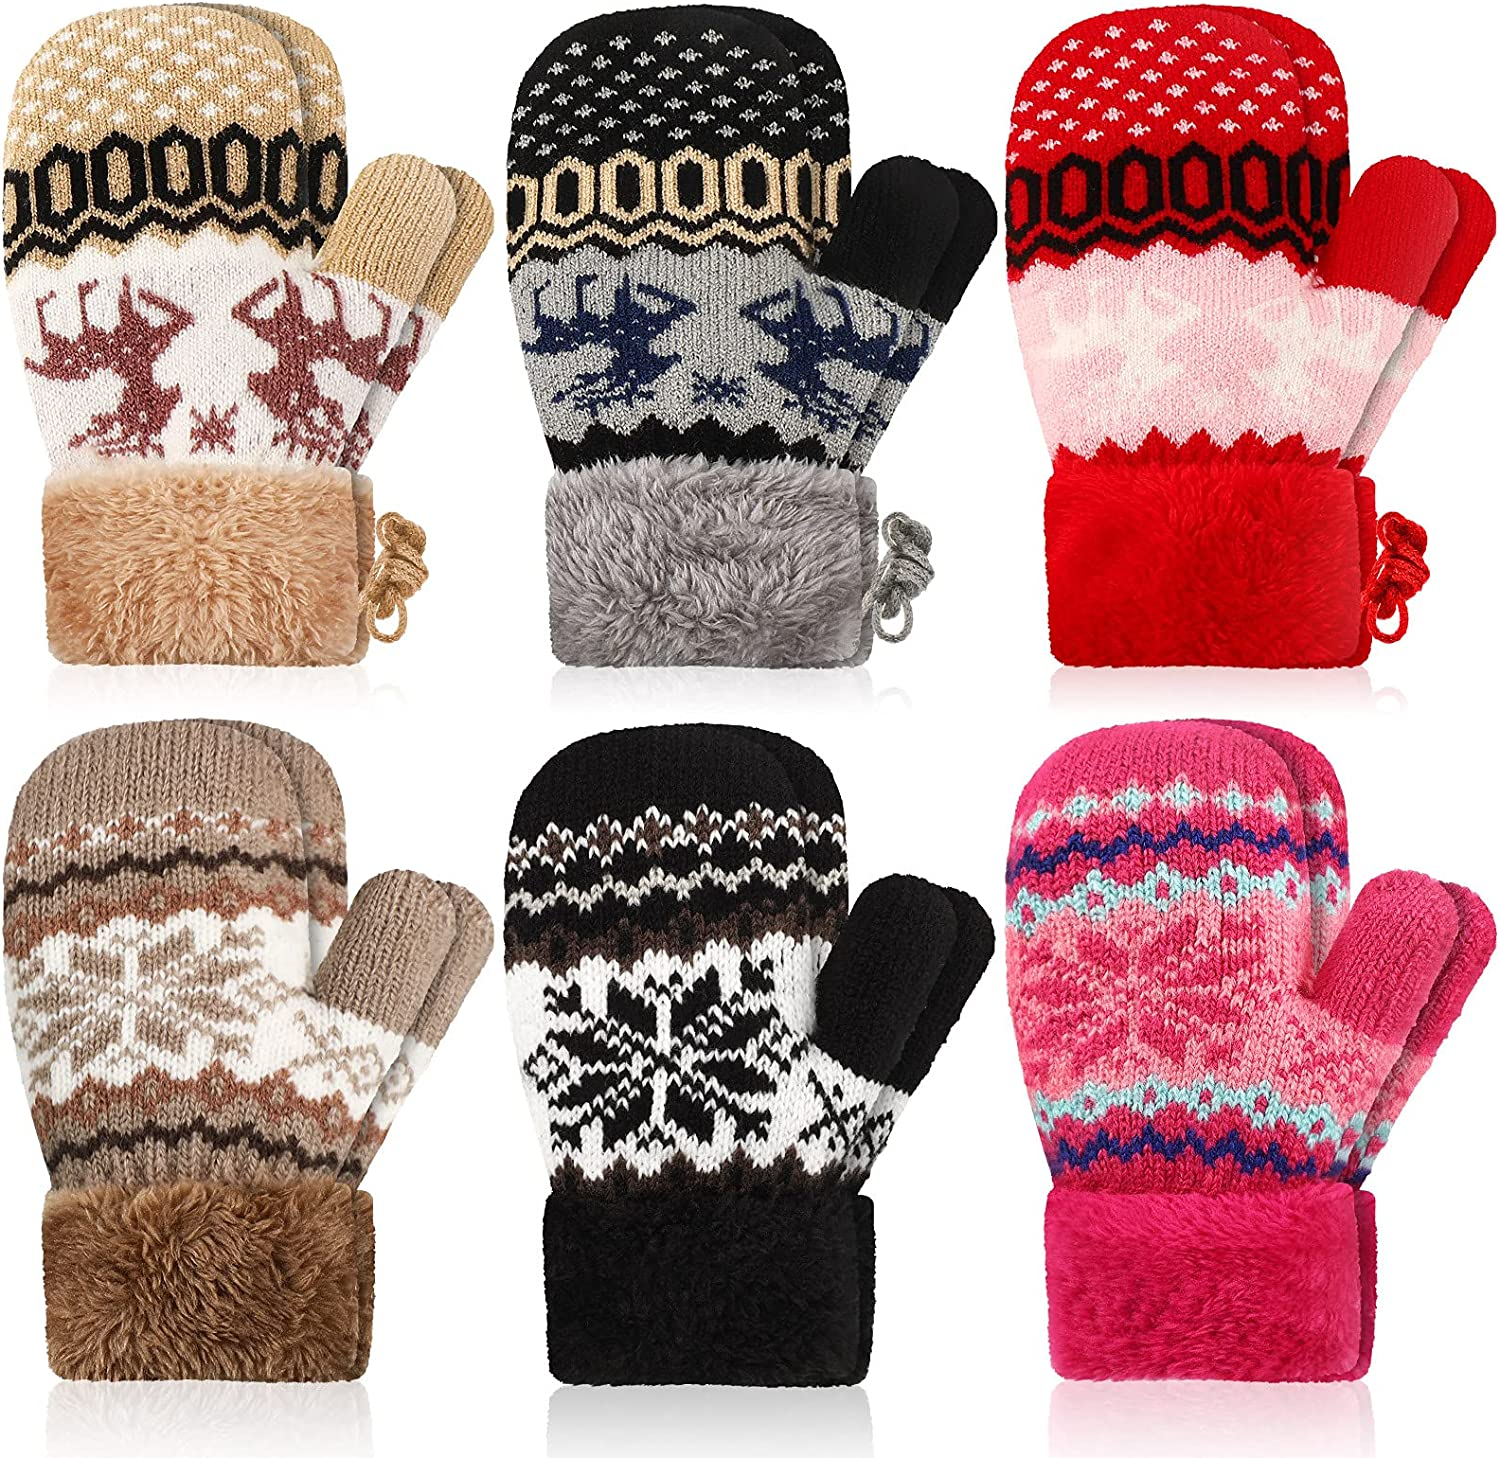 6 Pairs Toddler Warm Winter Mittens Unisex Baby Mitten Fleece Lining Knit Gloves with Rope Snowflake Deer Thick Thermal Gloves for Baby Boys Girls